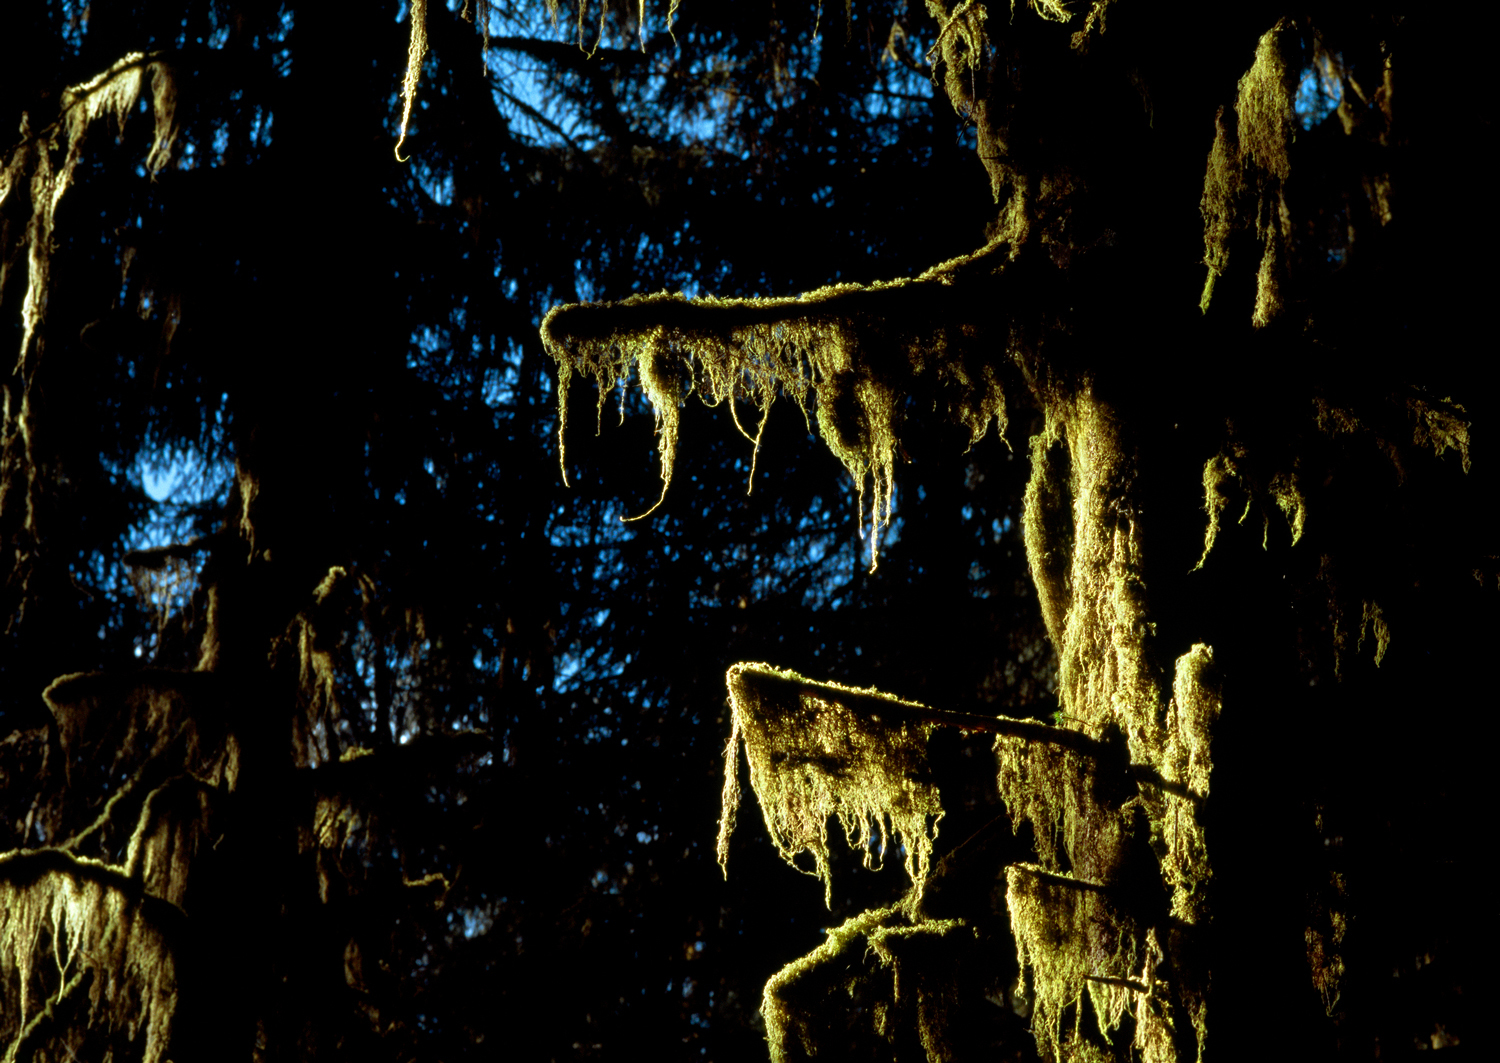 Illuminated Cat-Tail Moss no. 1